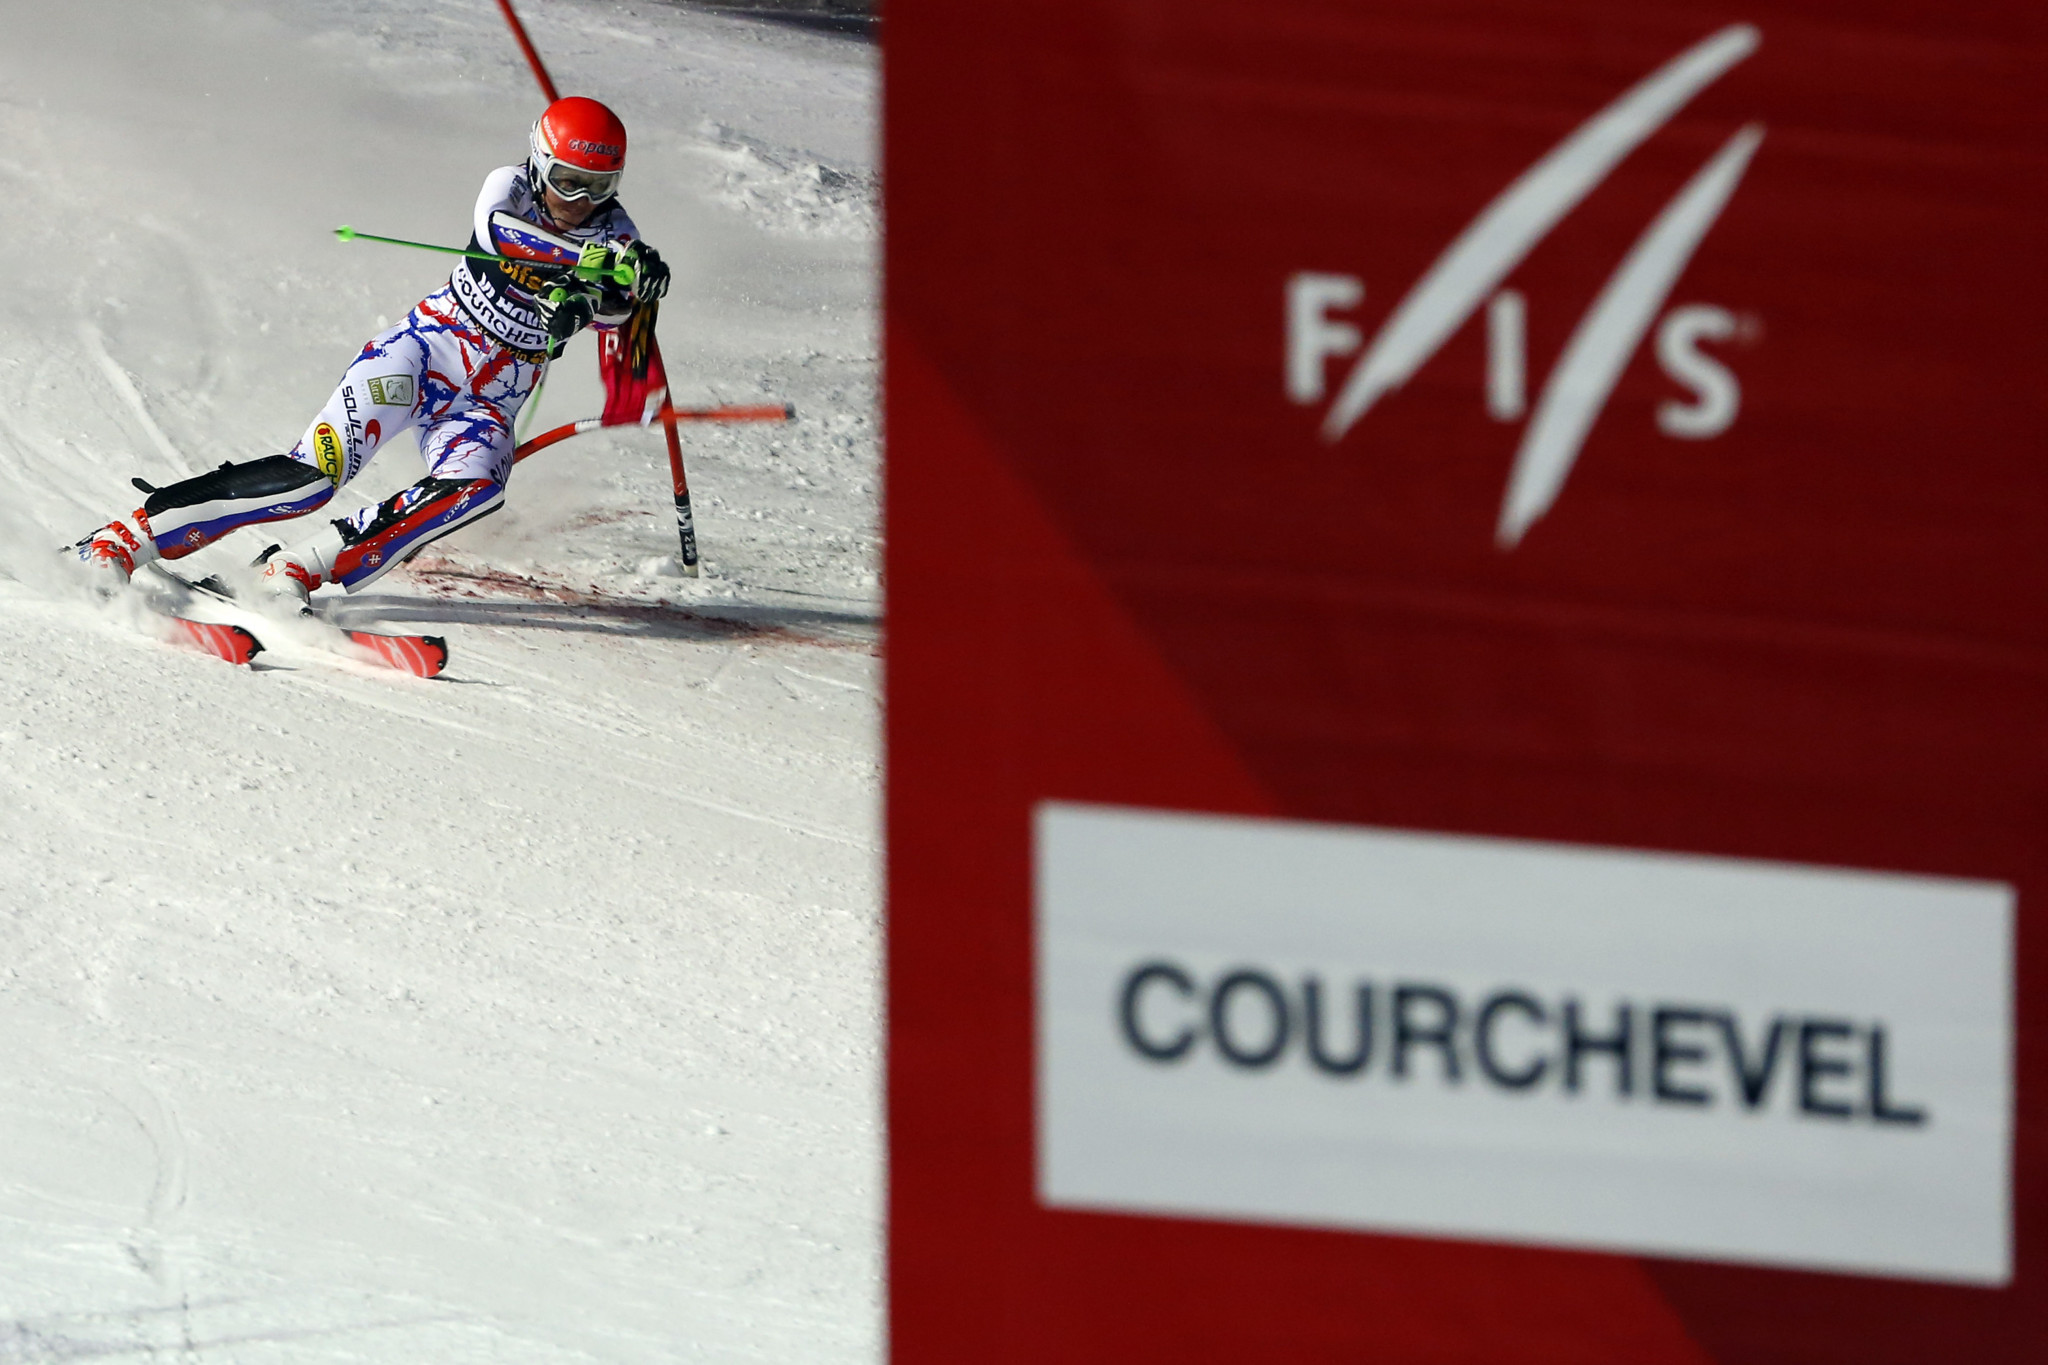 Courchevel-Meribel has hosted a pre-inspection ahead of its hoting of the Alpine World Ski Championships  of 2023 ©Getty Images